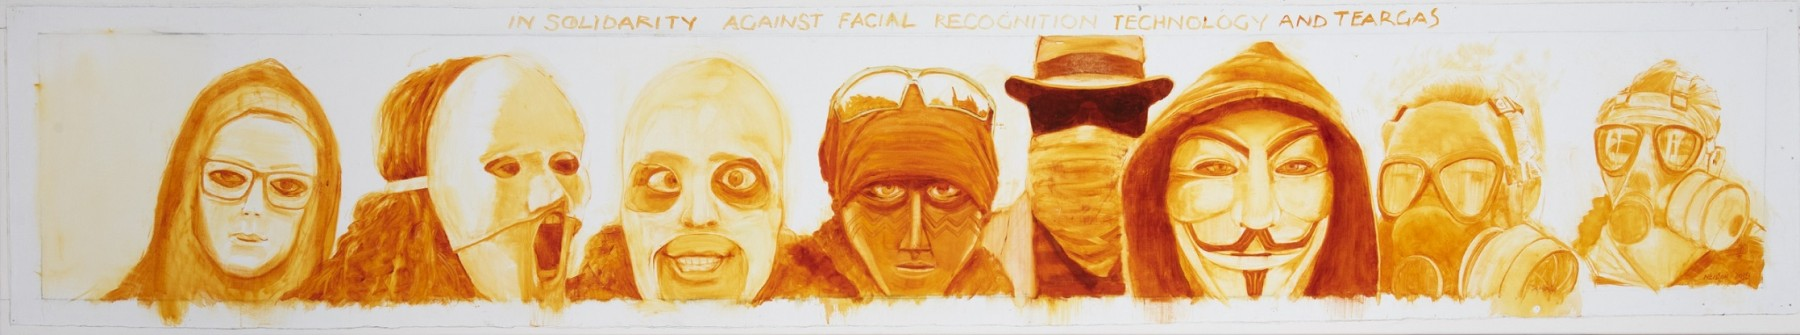 In solidarity against facial recognition technology…and tear gas